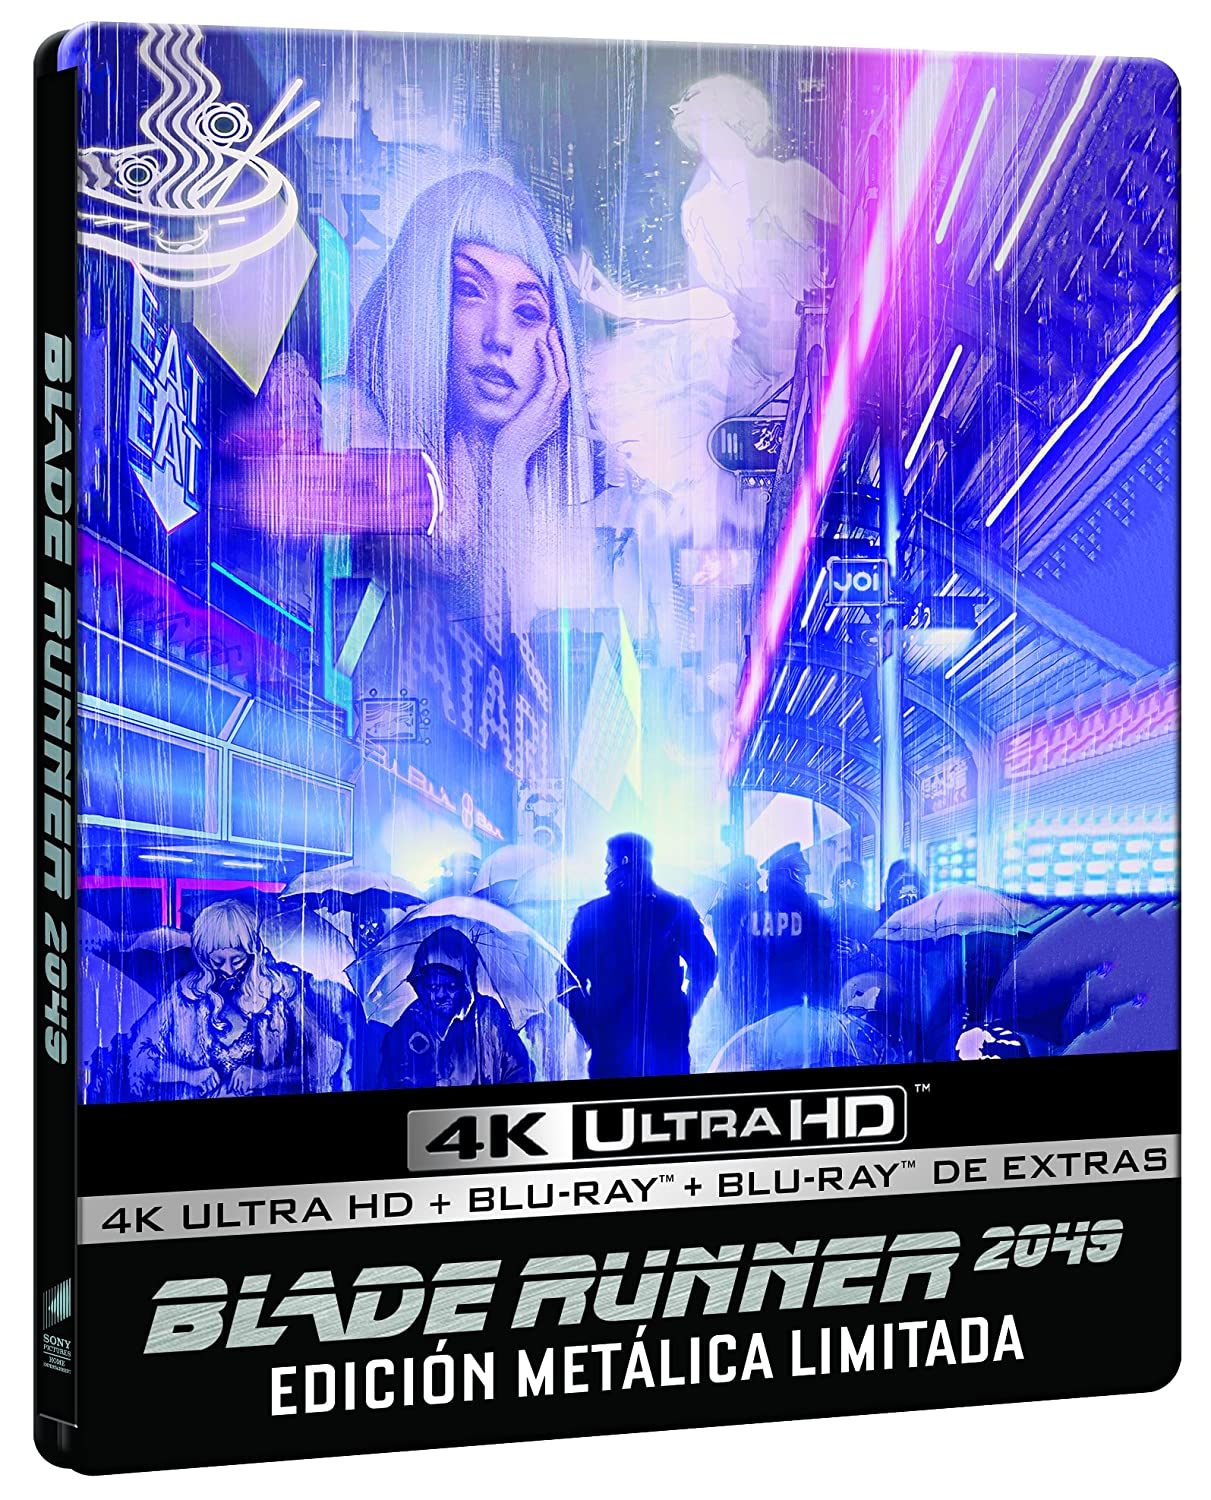 Blade Runner 2049 (3-disc MONDO Steelbook 4K UHD / Blu-ray / Blu-ray Bonus) [Region-Free European Import Limited Edition]